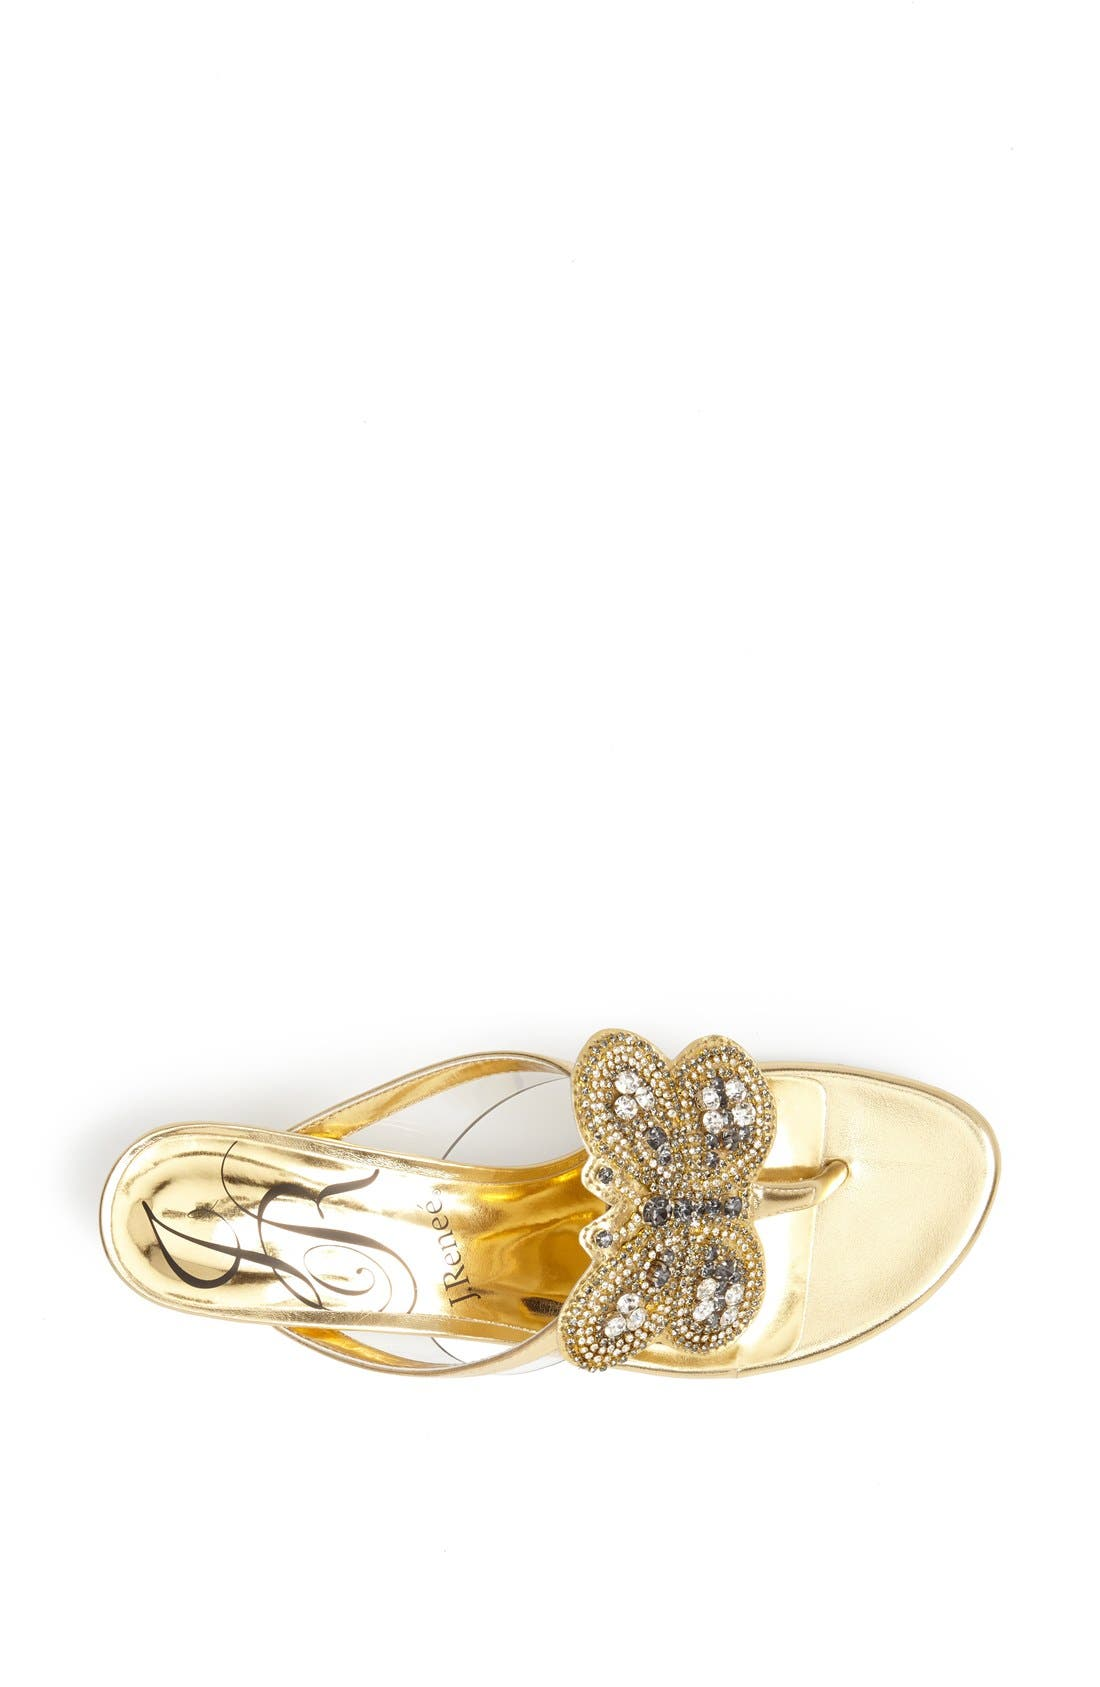 Alternate Image 3  - J. Reneé 'Imbrie' Embellished Thong Sandal